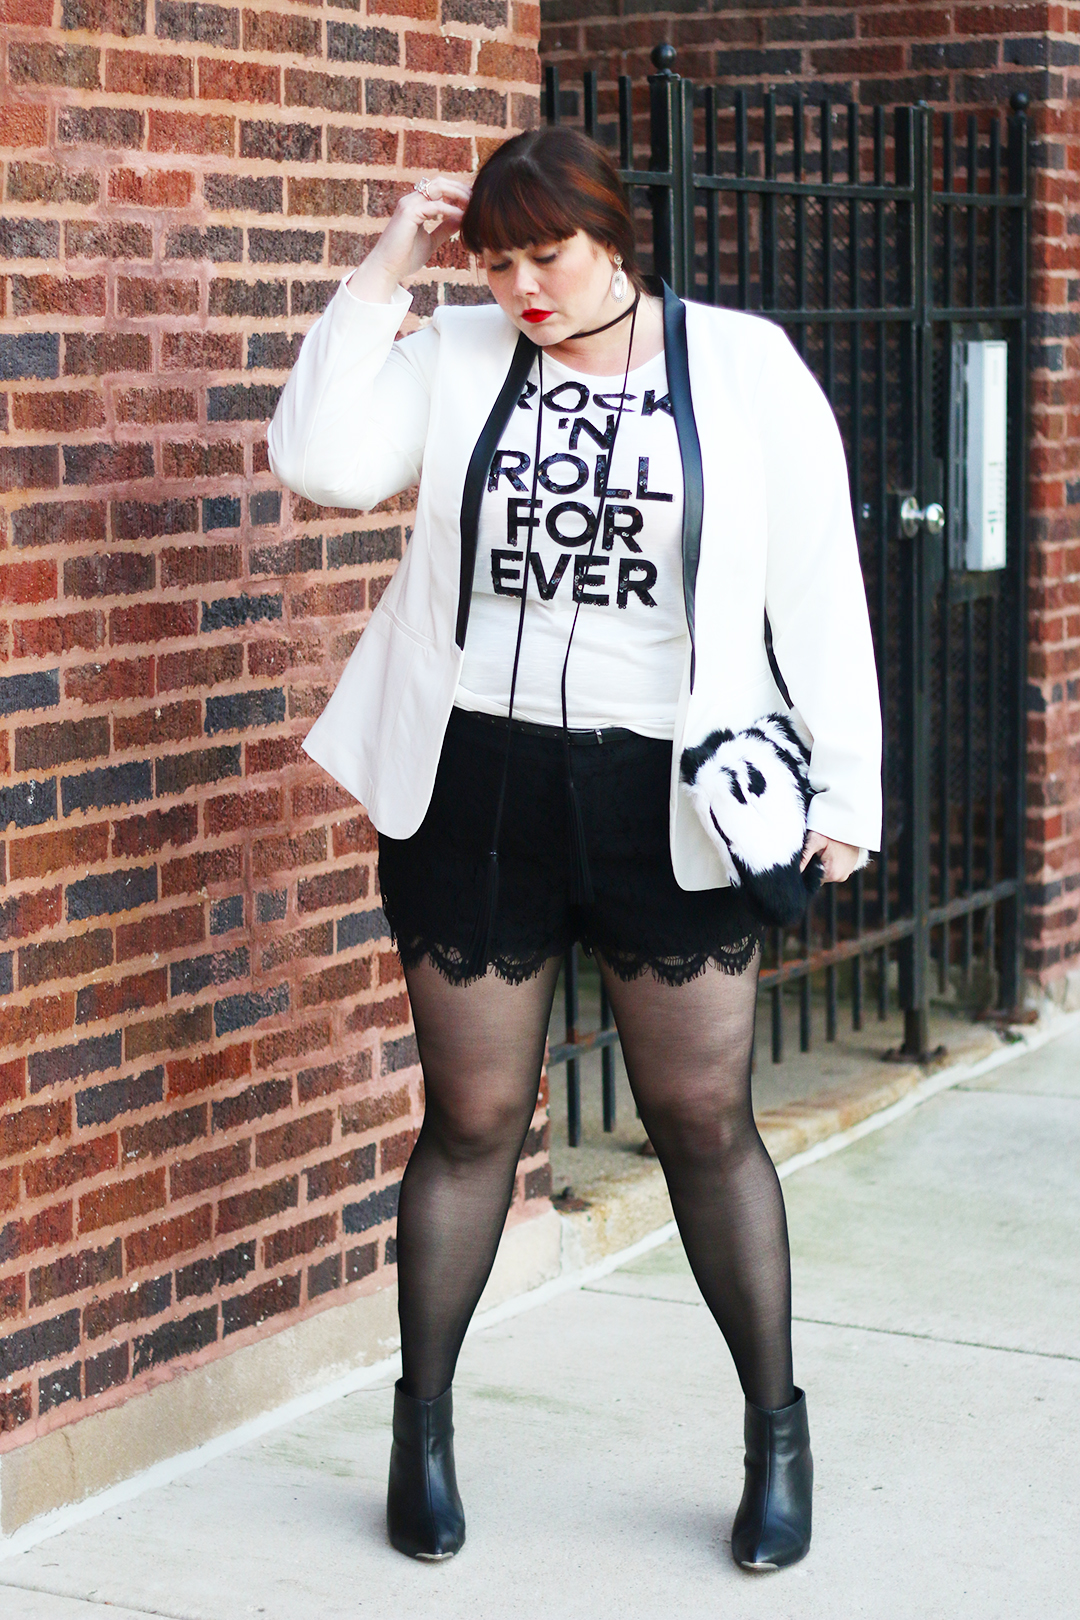 Plus Size Blogger Amber in a White Blazer and Lace Shorts from Torrid, Holiday Style, Plus size holiday